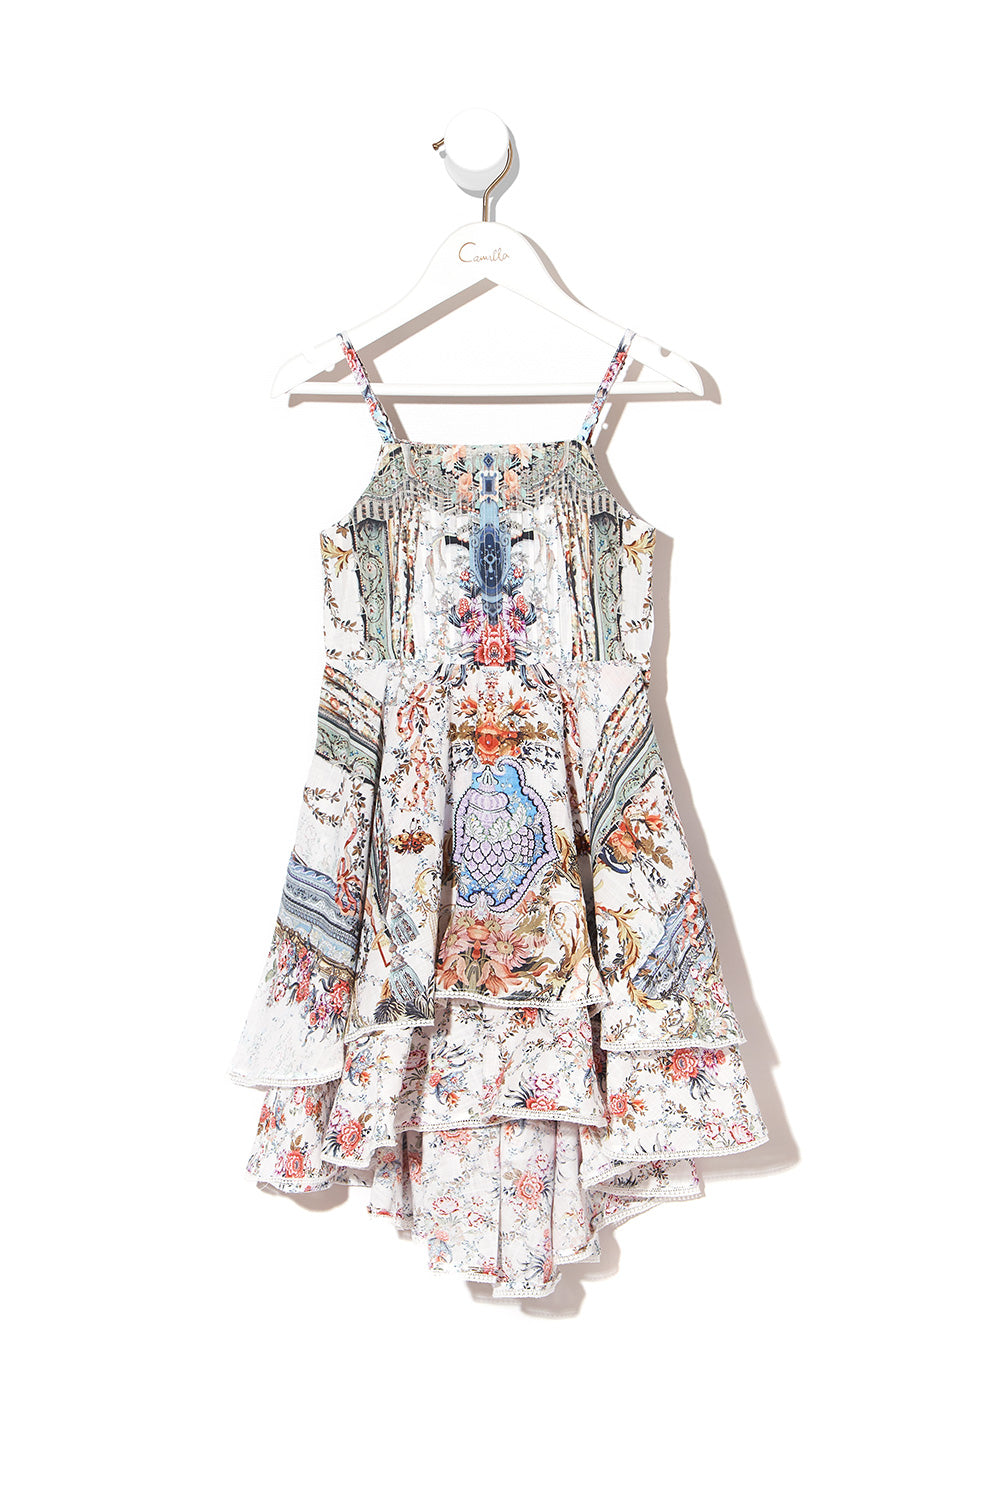 f830e8cee3e09 KIDS' DRESS WITH PINTUCKING SOUTHERN BELLE – CAMILLA